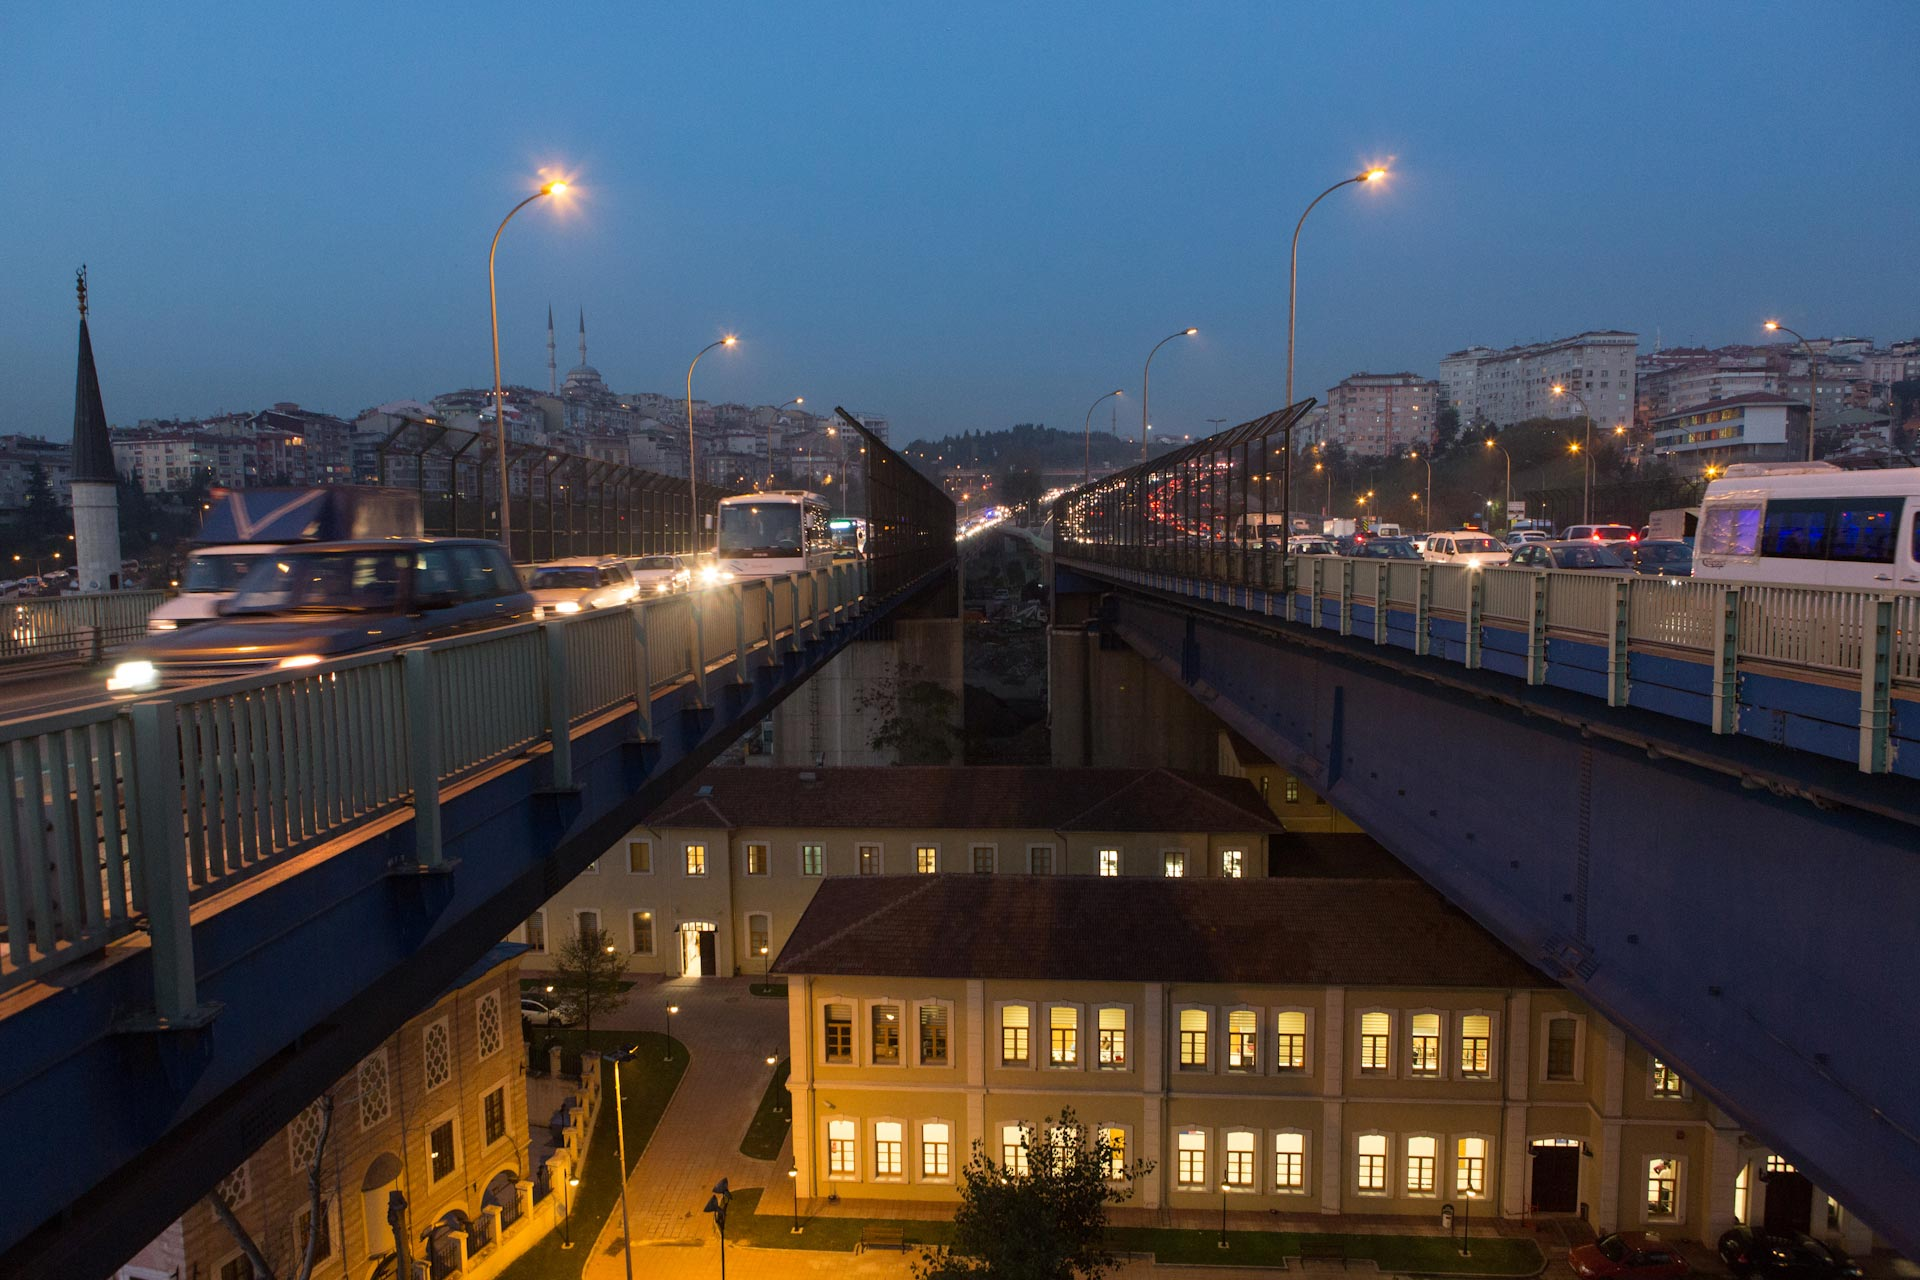 Rooring evening traffic on the Haliç Köprüsü (Bridge), which crosses the Golden Horn